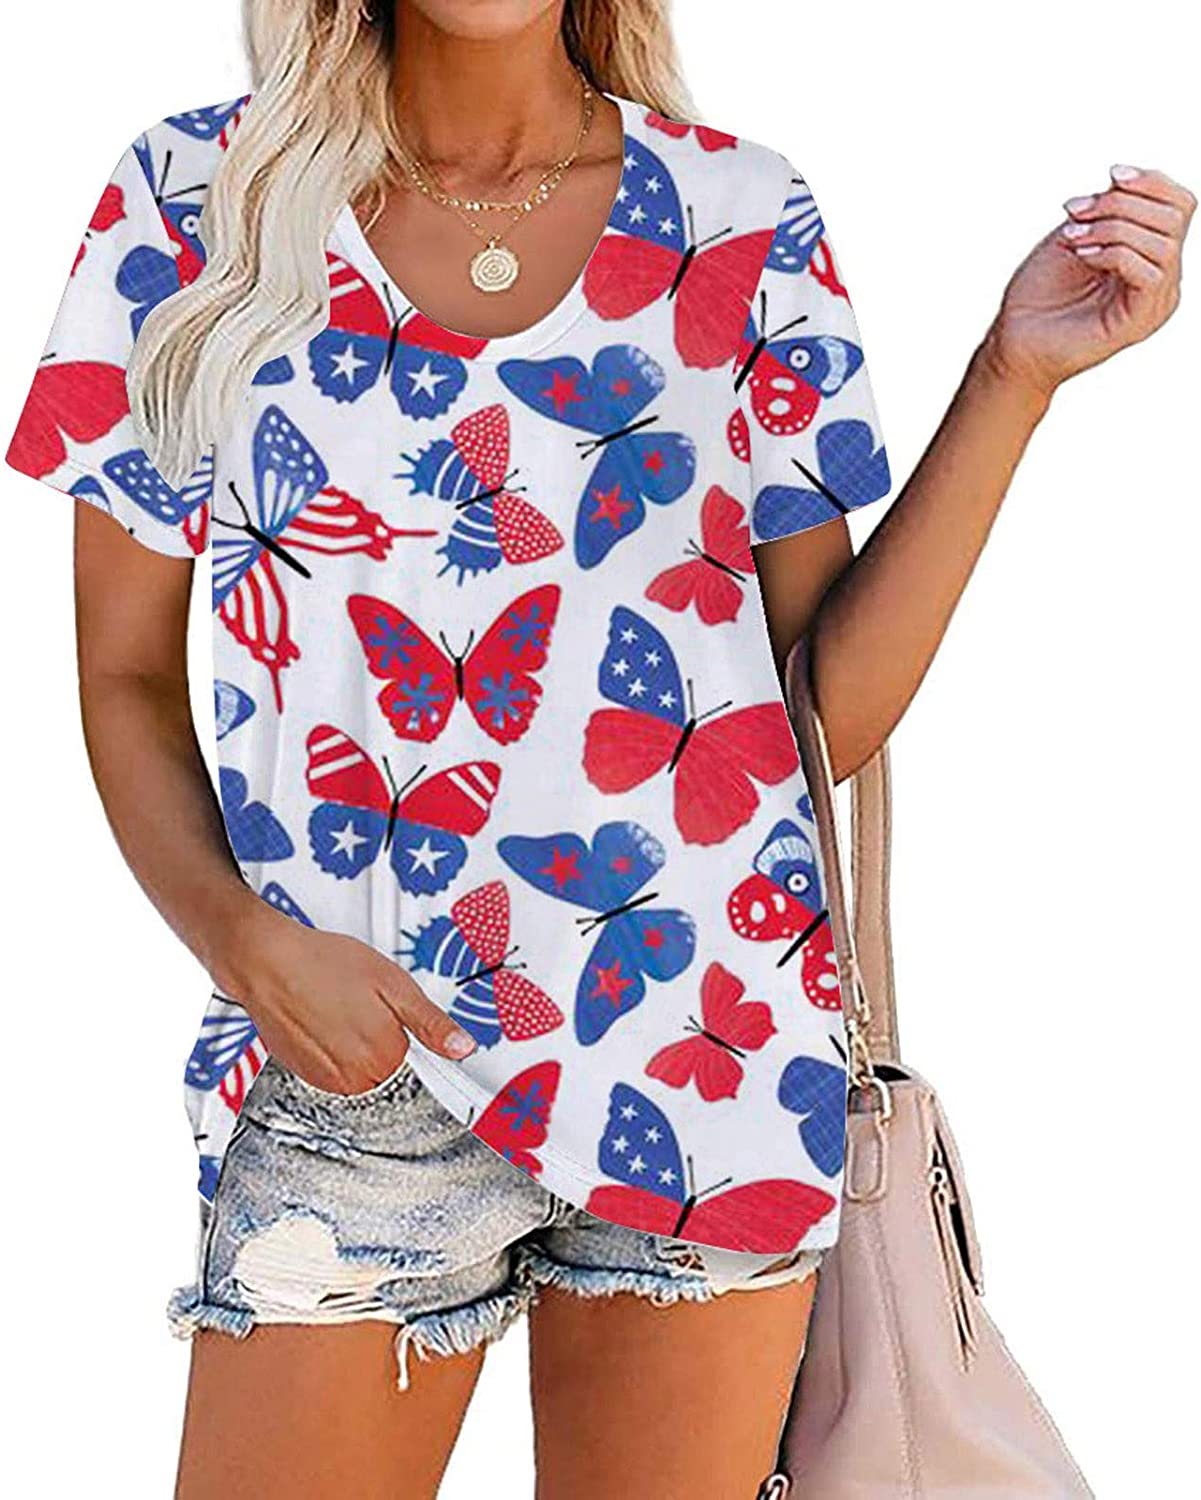 Shirts for Women, Womens V Neck T Shirts Roll up Sleeve Tshirts Gradiant Color Loose Fit Summer Casual Side Split Tops